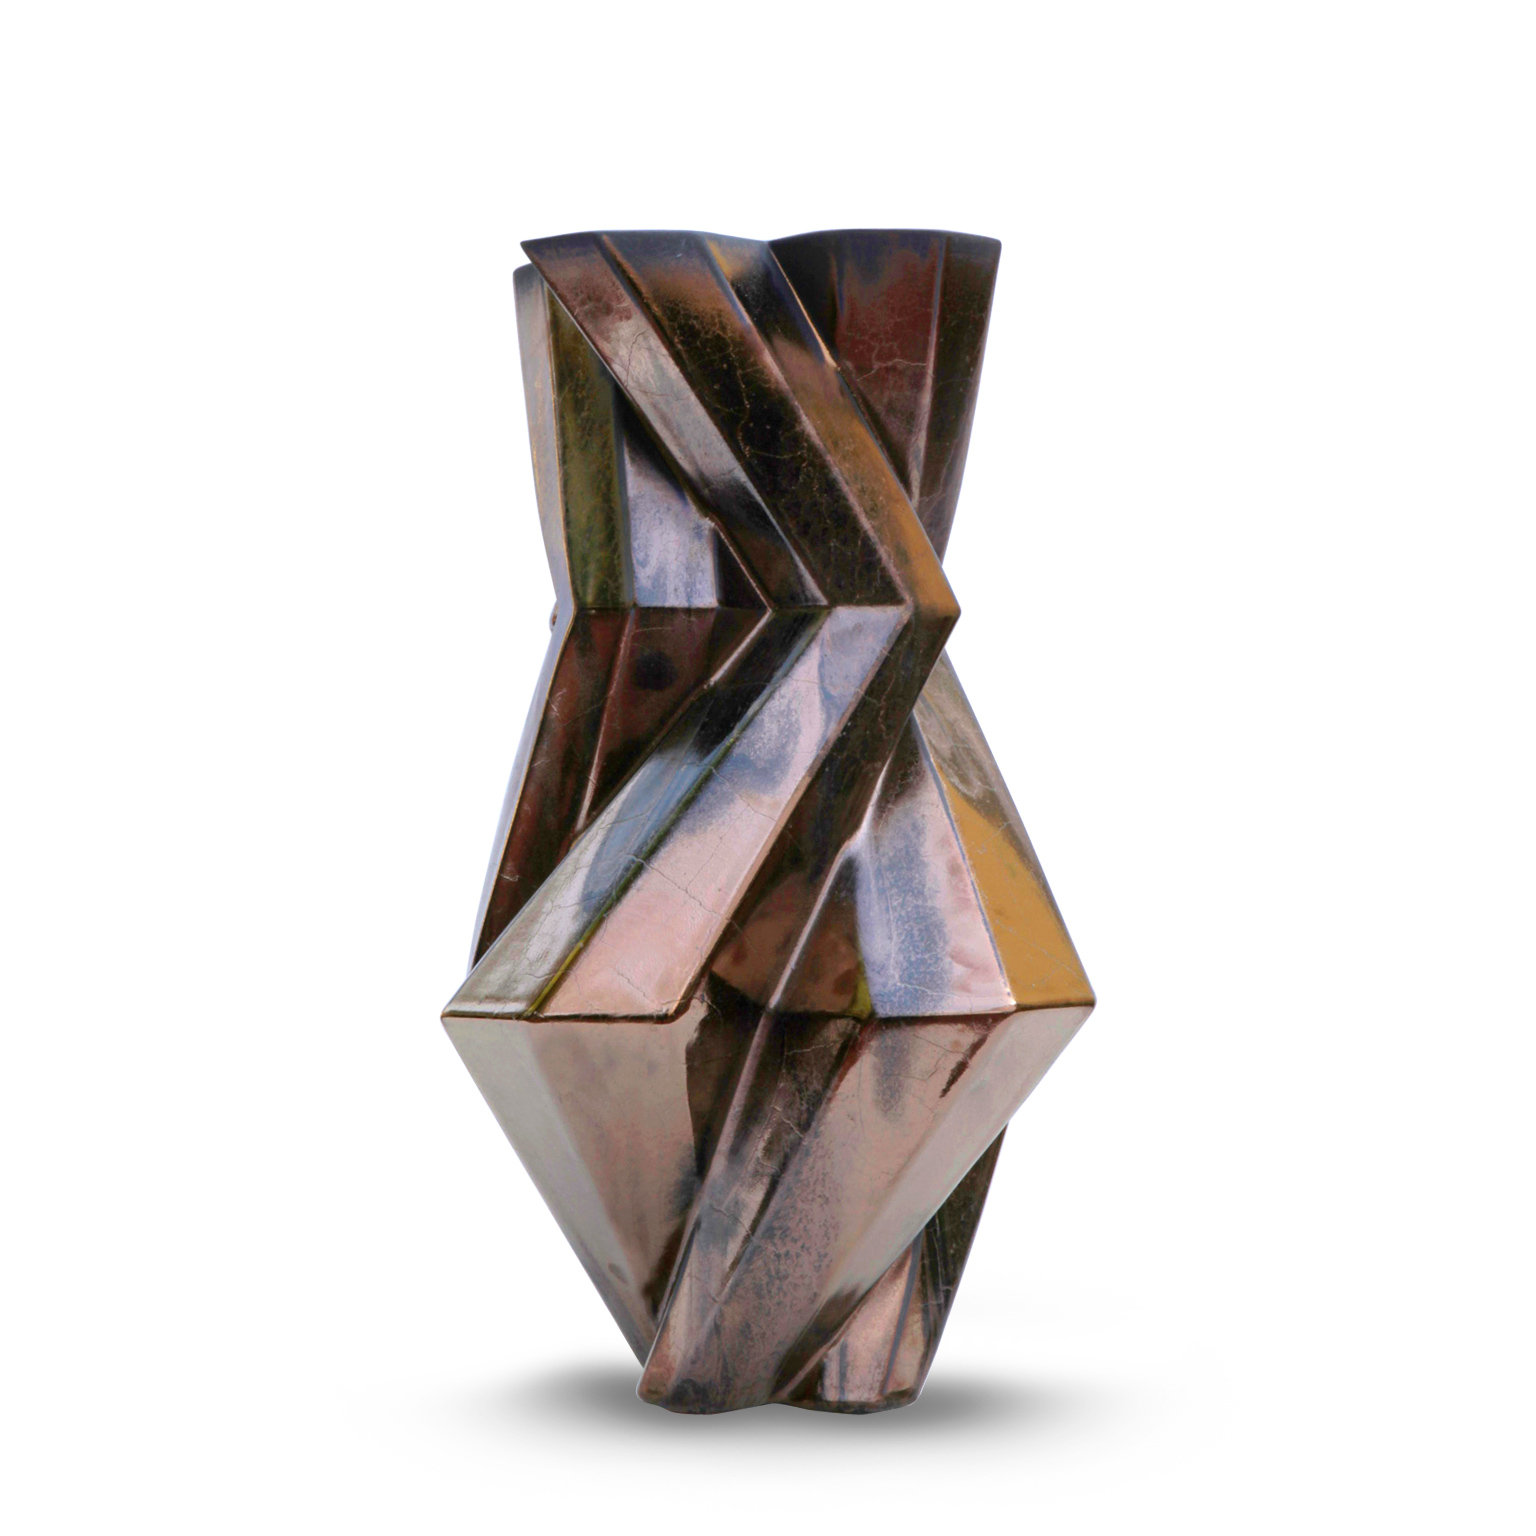 Fortress Castle Vase Bronze - <p>Designer Lara Bohinc explores the marriage of ancient and futuristic form in the new Fortress Vase range, which has created a more complex geometric and modern structure from the original inspiration of the octagonal towers at the Diocletian Palace in Croatia. The resulting hexagonal blocks interlock and embrace to allow the play of light and shade on the many surfaces and angles. There are four Fortress shapes: the larger Column and Castle (45cm height), the Pillar (30cm height) and the Tower vase (37cm height). These are hand made from ceramic in a small Italian artisanal workshop and come in three finishes: dark gold, bronze and speckled white.</p>  | Matter of Stuff